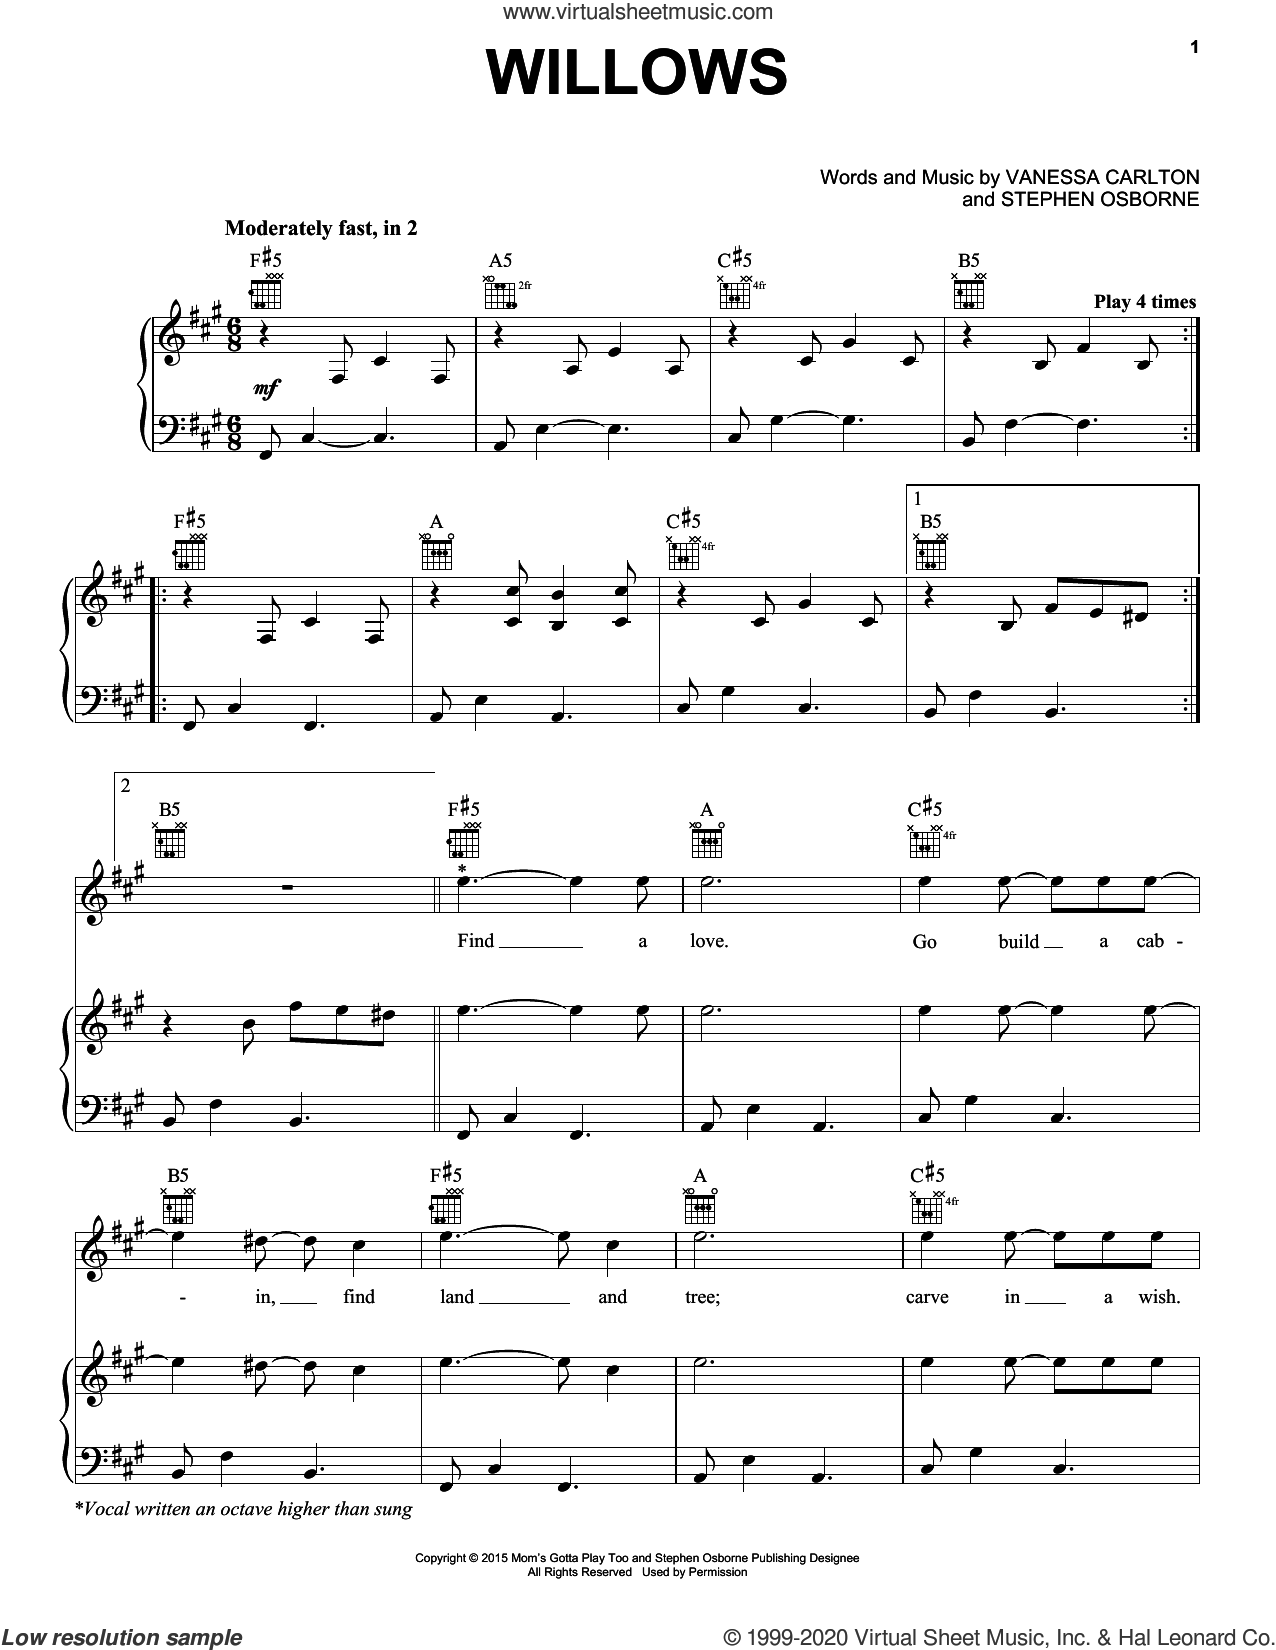 Willows sheet music for voice, piano or guitar by Vanessa Carlton and Stephen Osborne, intermediate skill level